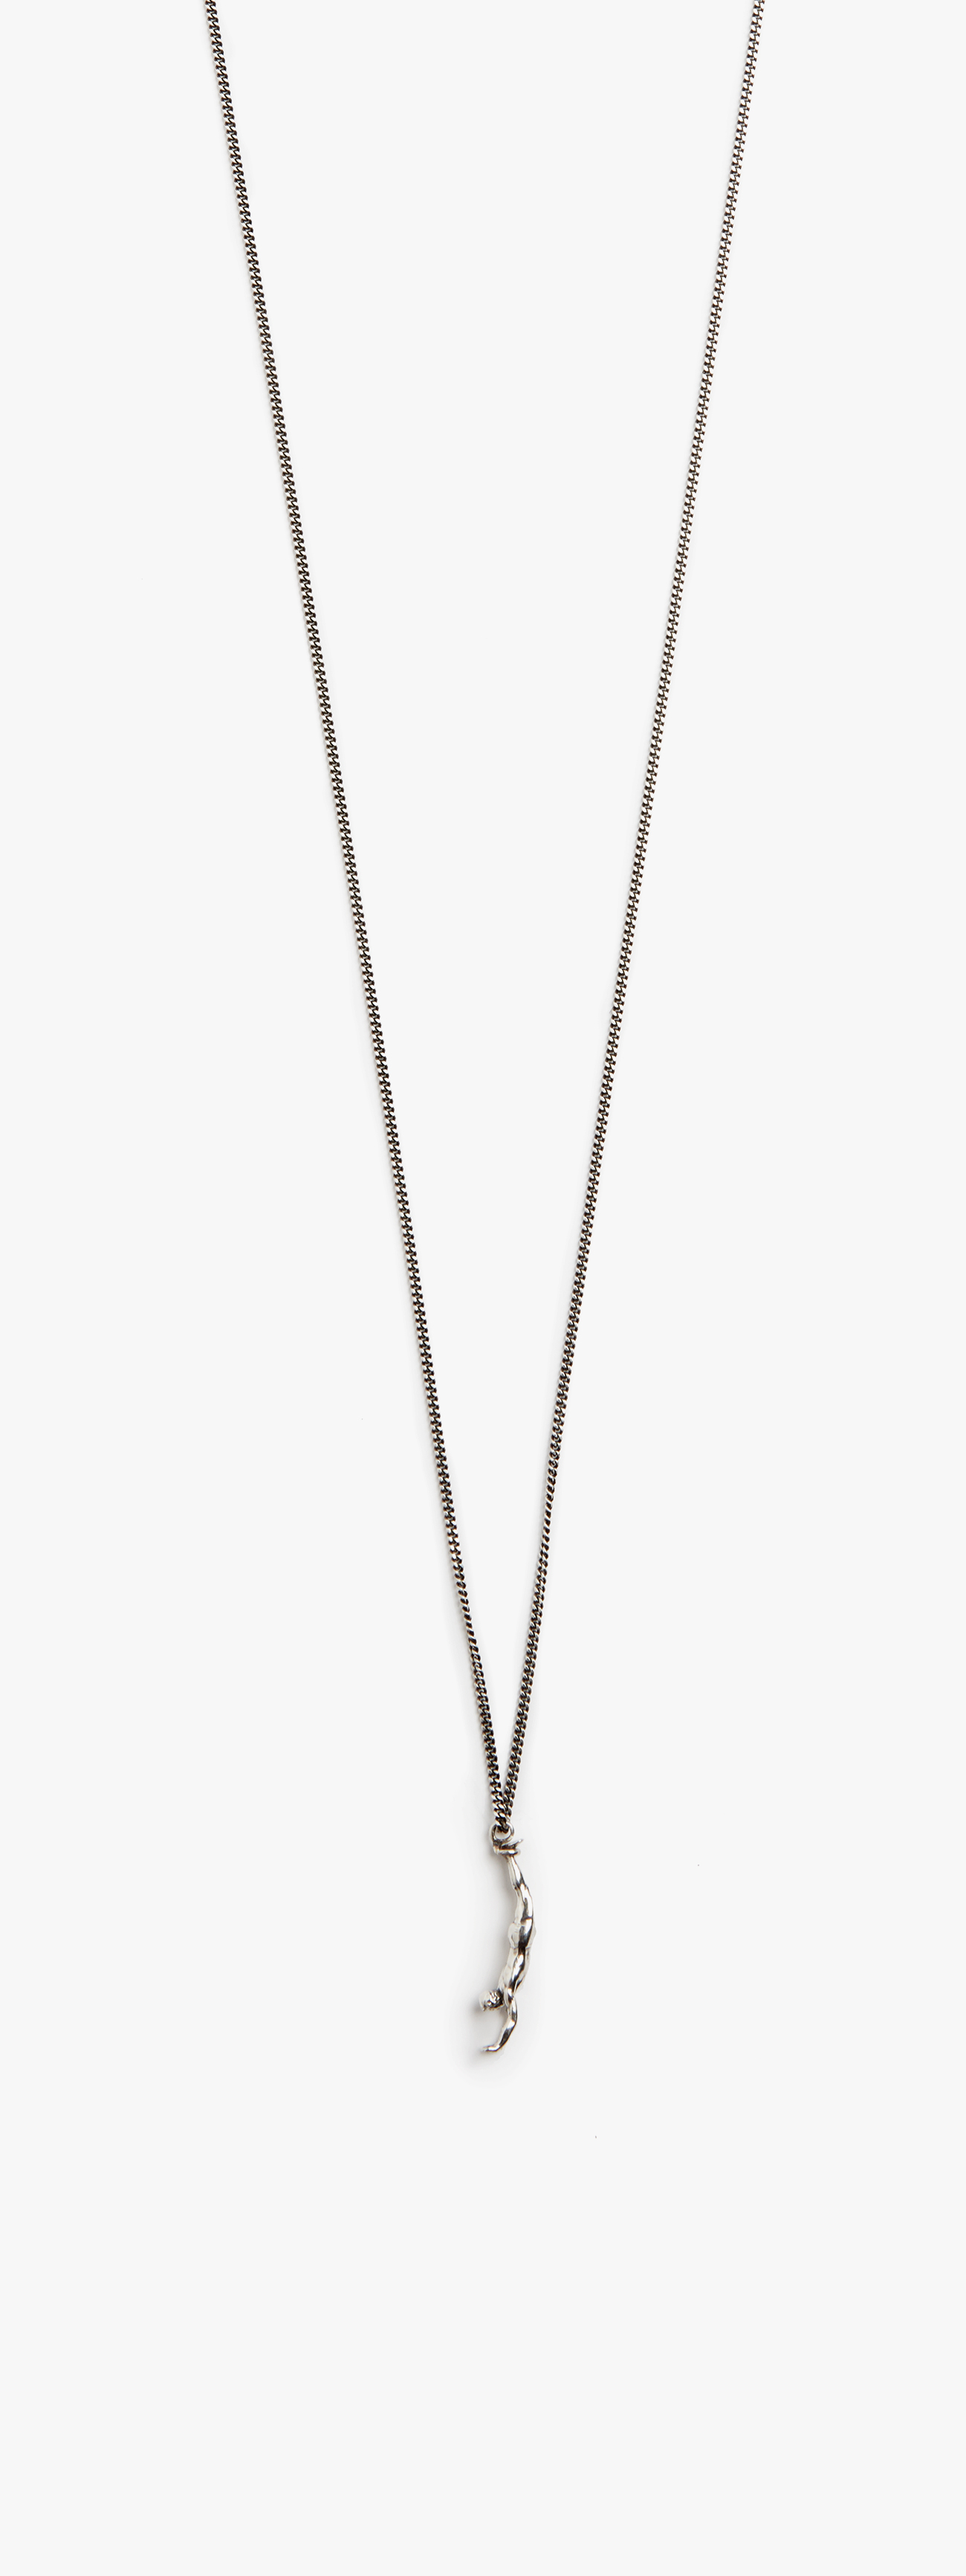 Image of Handstand Necklace